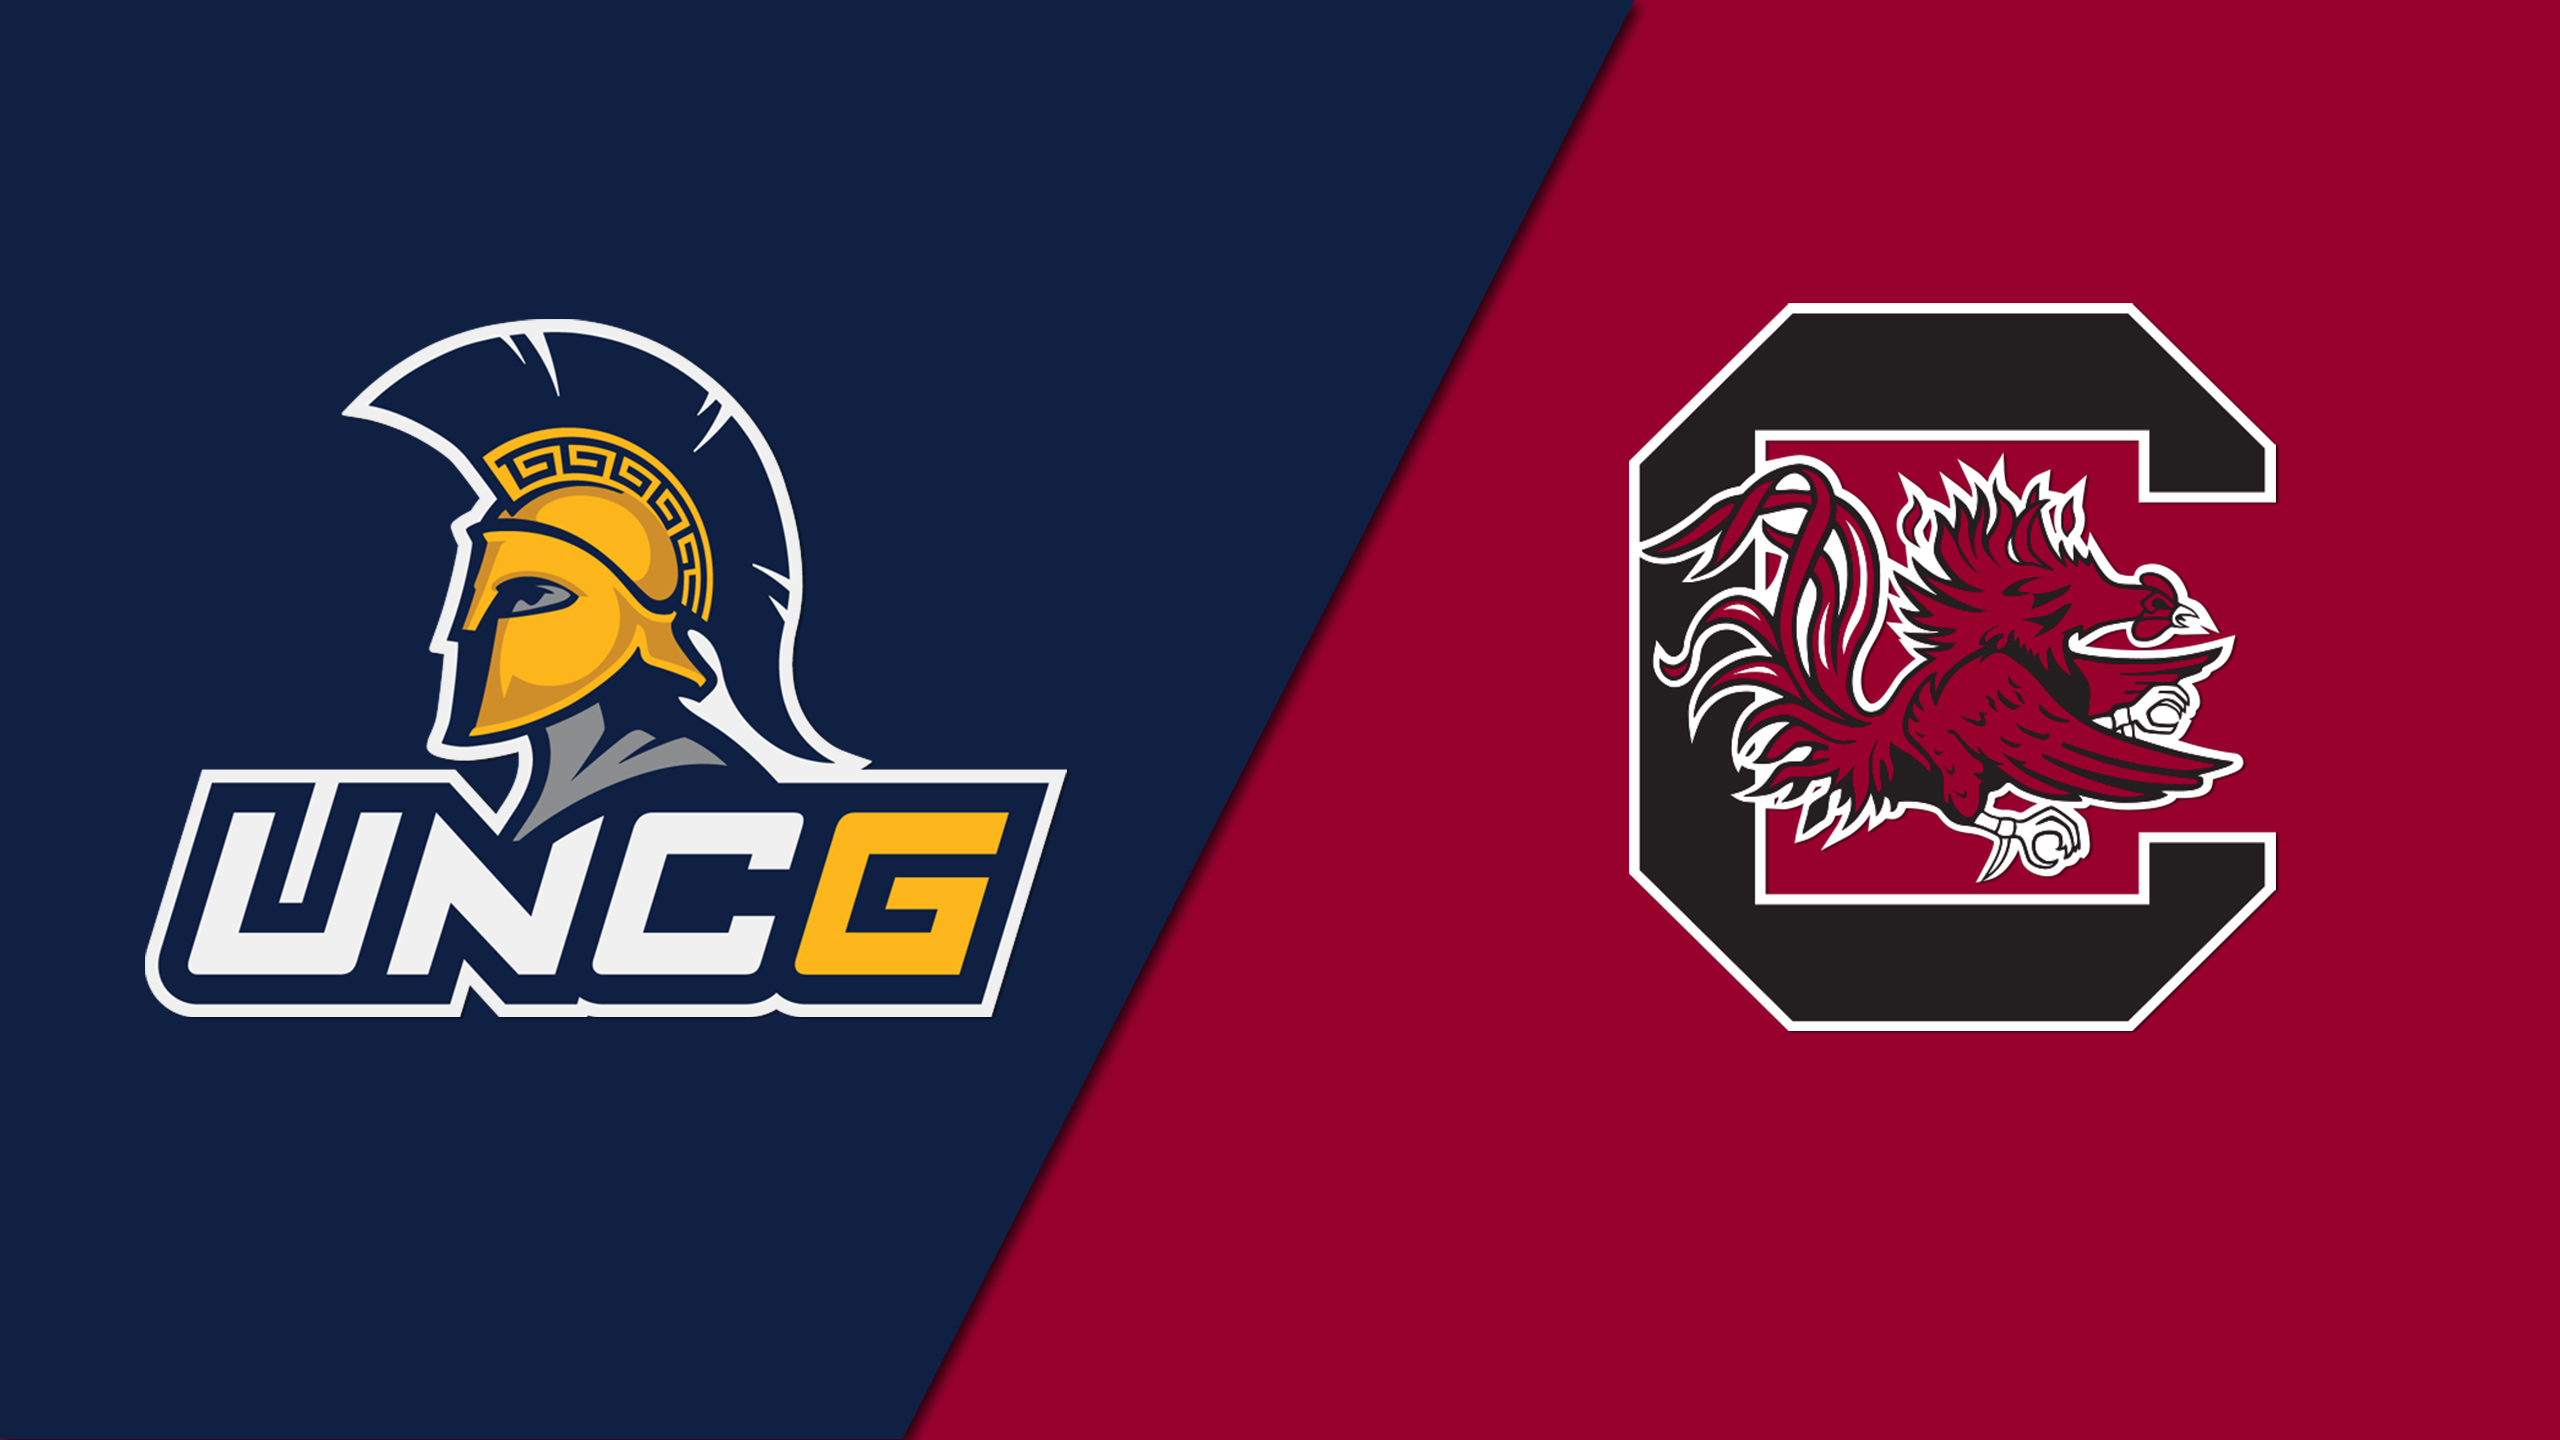 UNC Greensboro vs. #21 South Carolina (Softball)